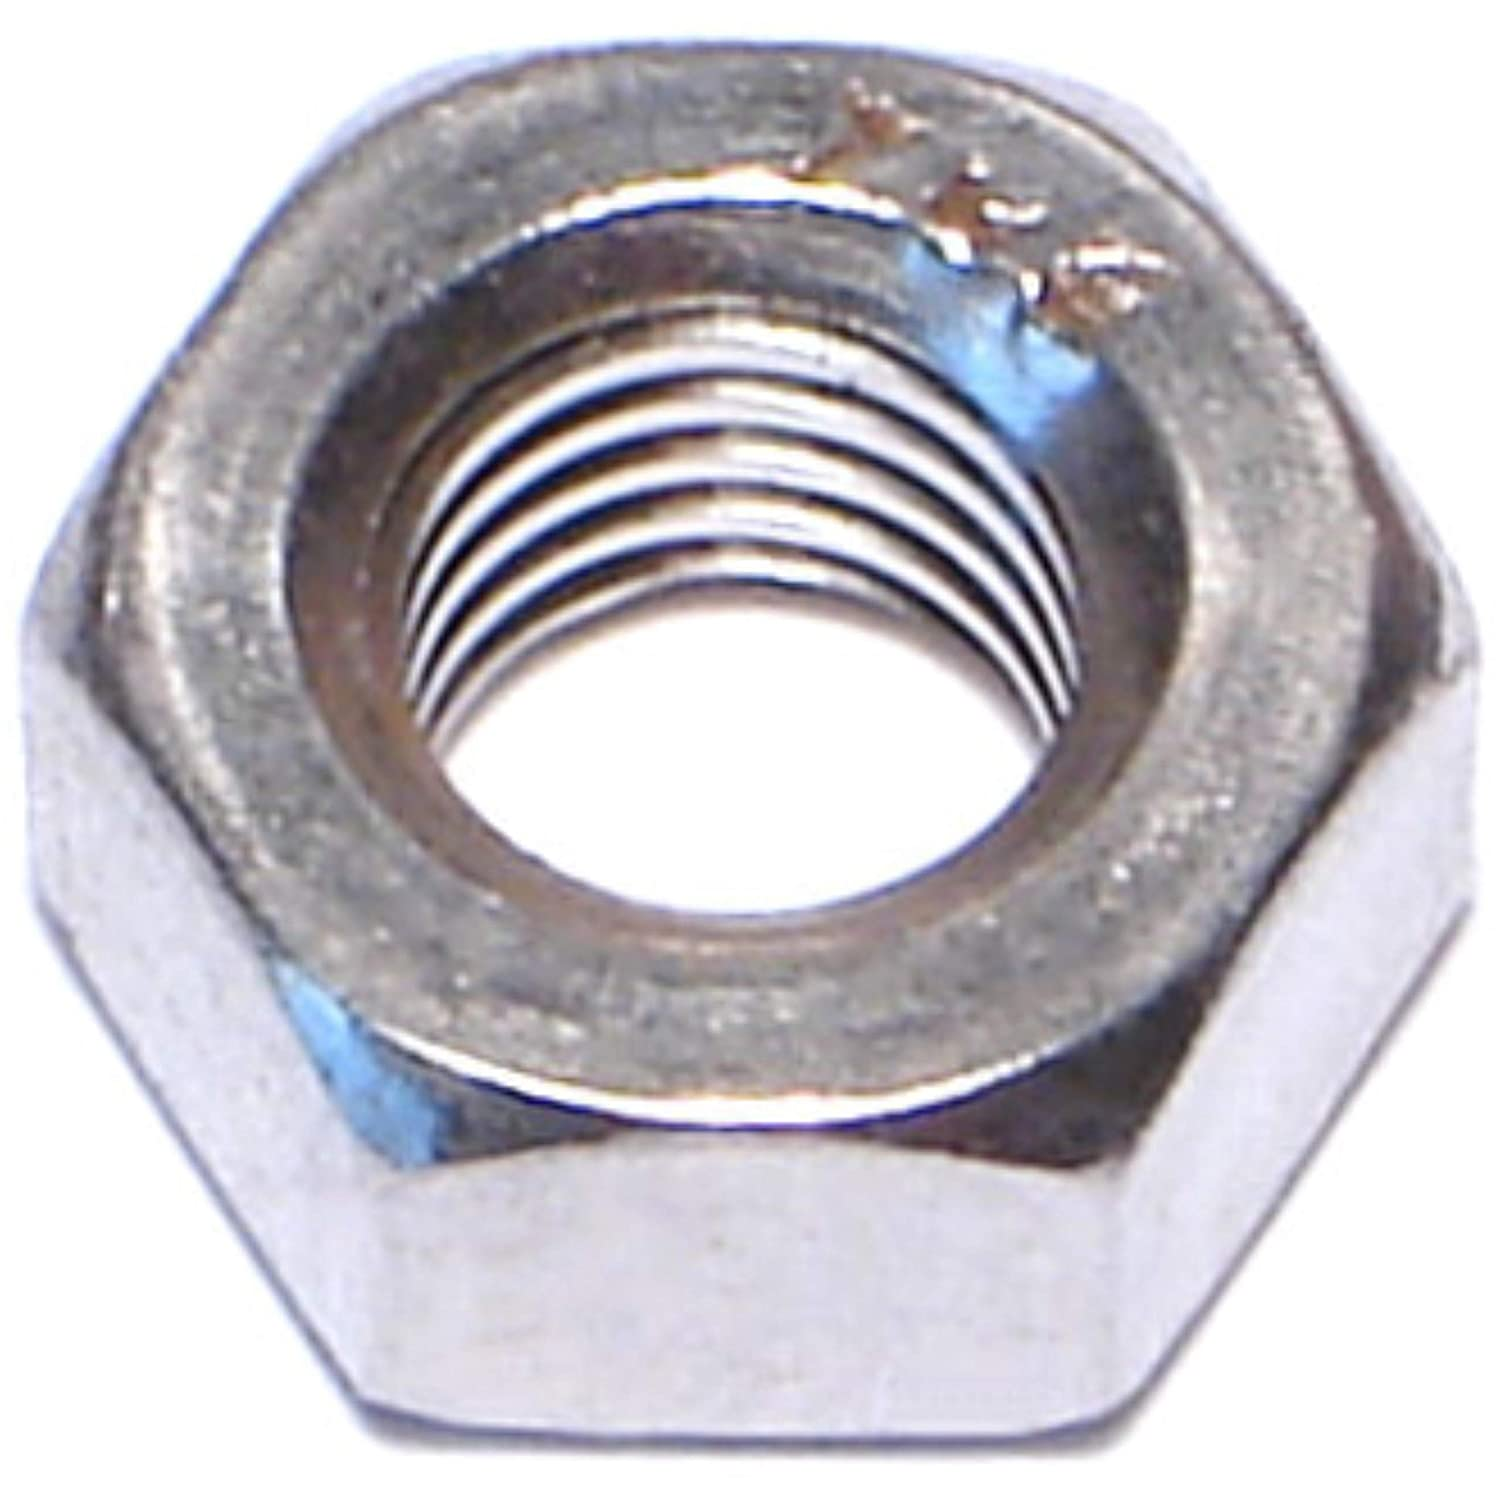 Piece-60 Hard-to-Find Fastener 014973137045 Finished Hex Nuts 10-24